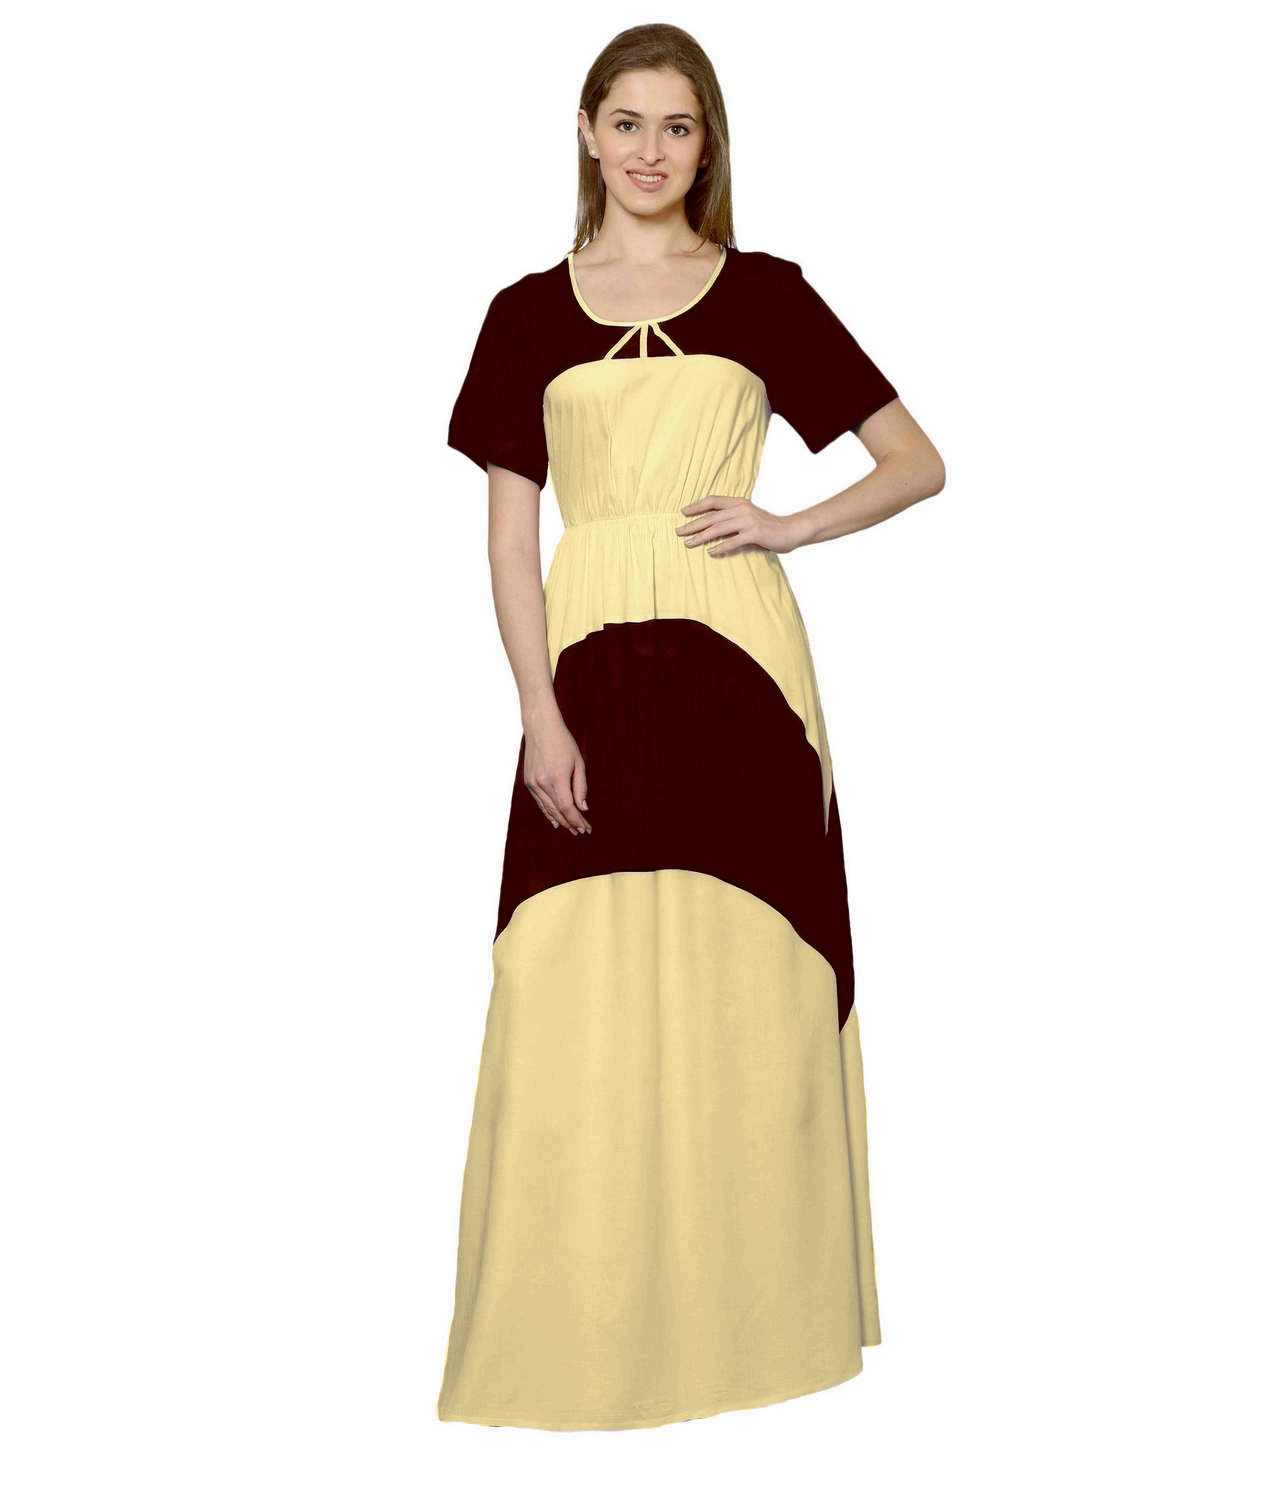 Color Block Slim Fit Maxi Dress Gown in Maroon:Gold